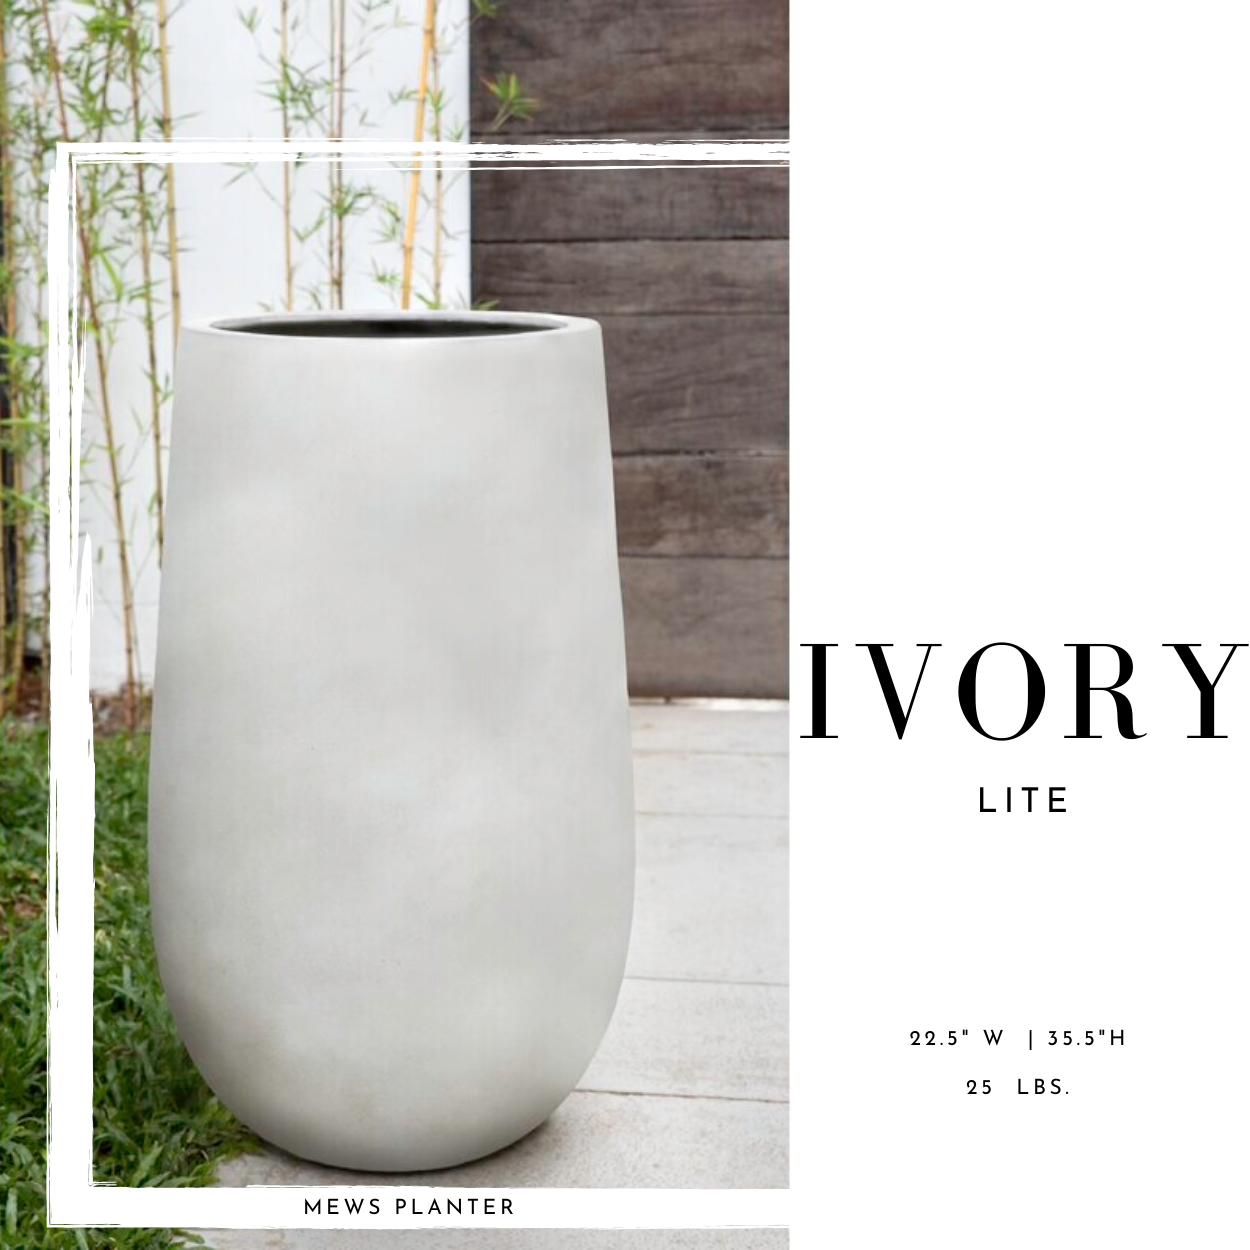 ivory-lite-campania-international-planter